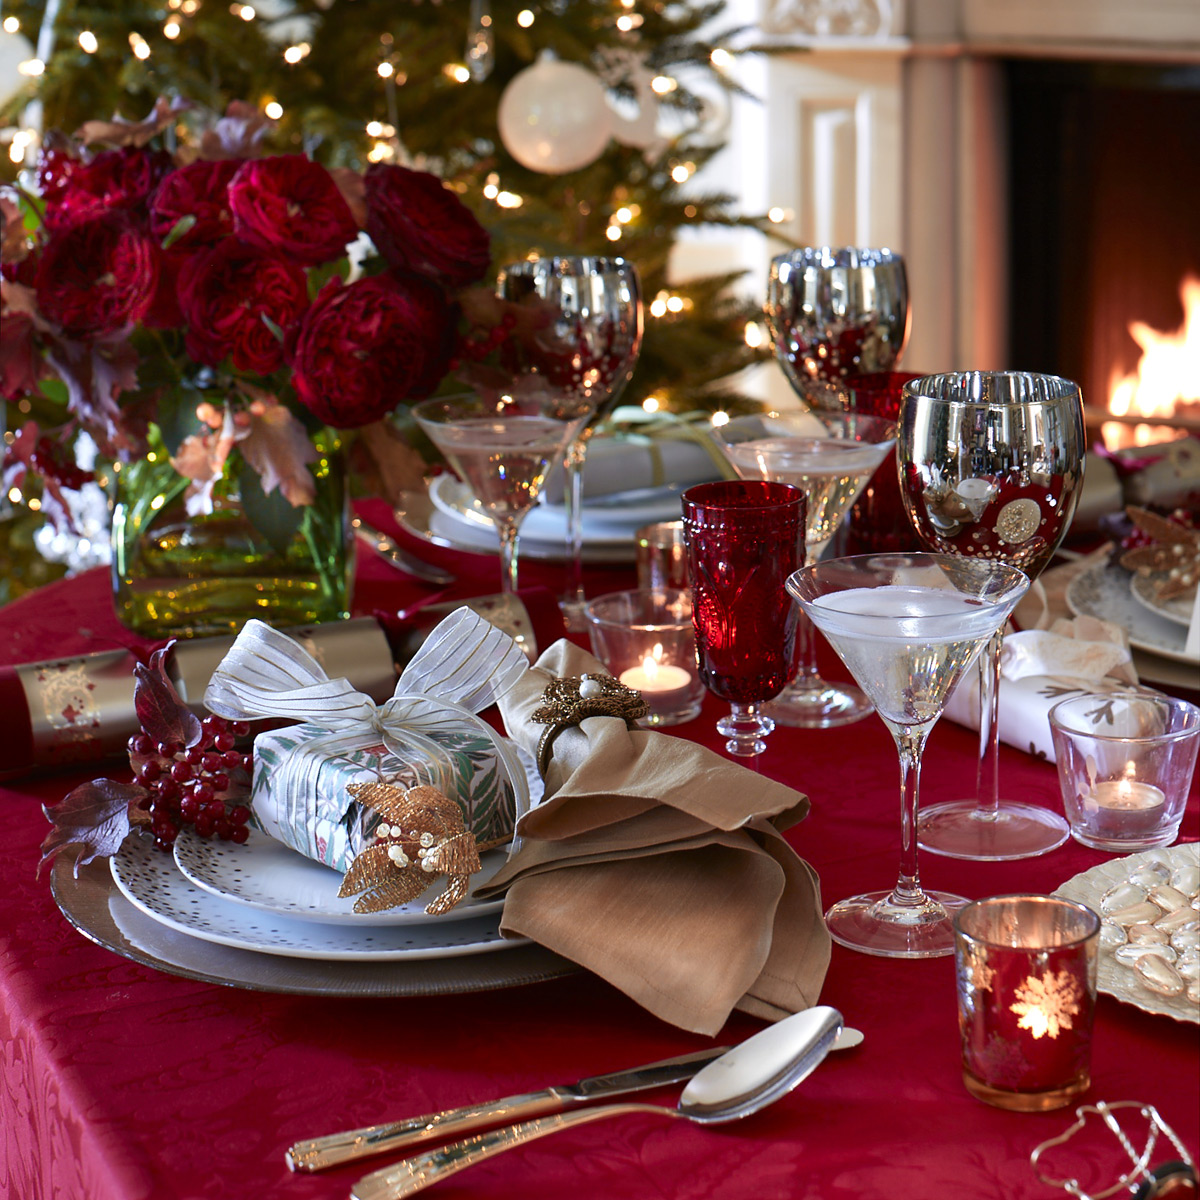 5 Ideas For Christmas Table Settings Festive Decorations